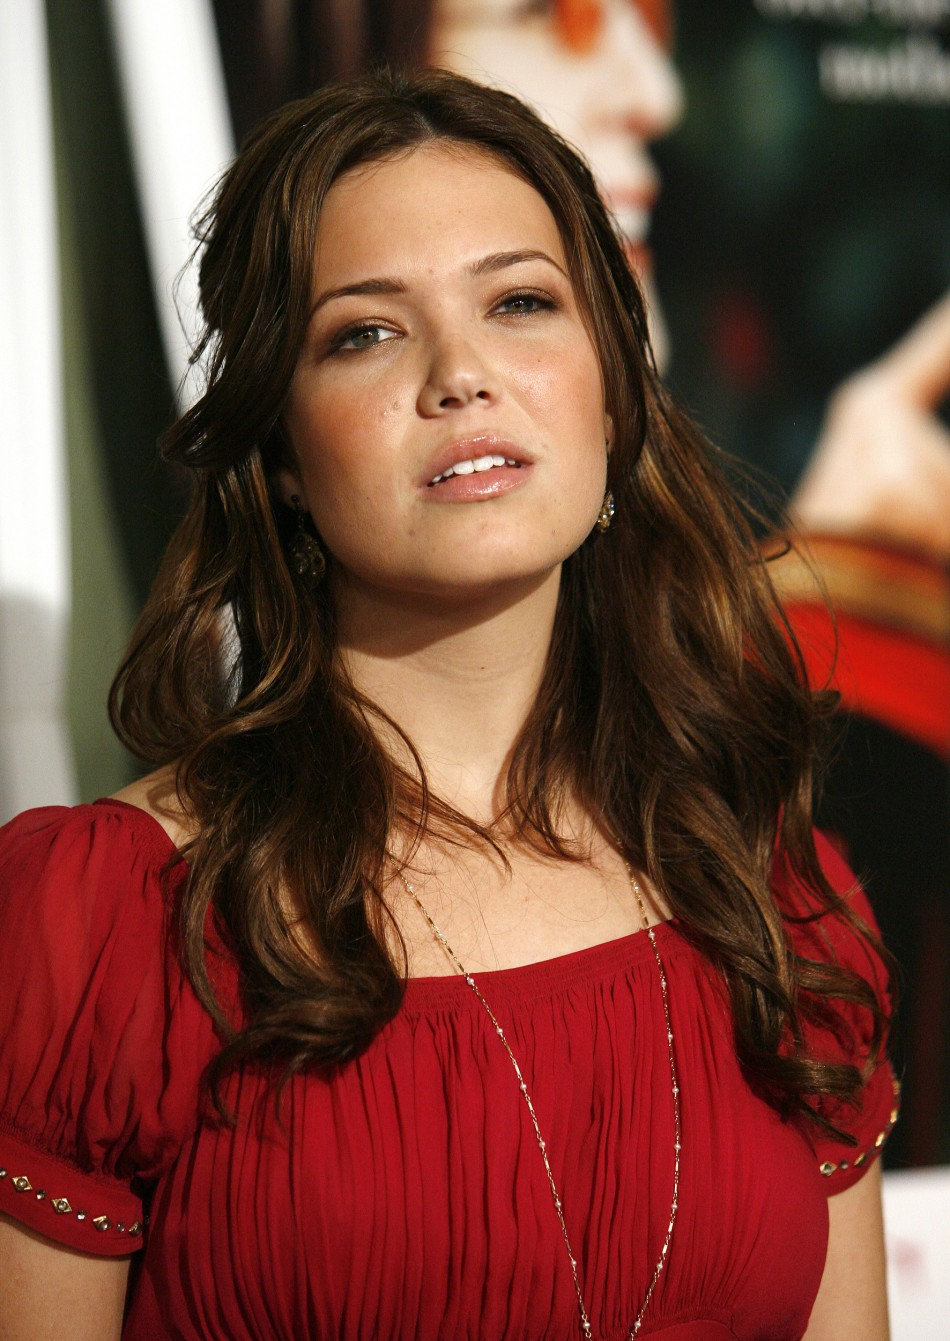 Mandy Moore poses at the world premiere of Because I Said So in Los Angeles